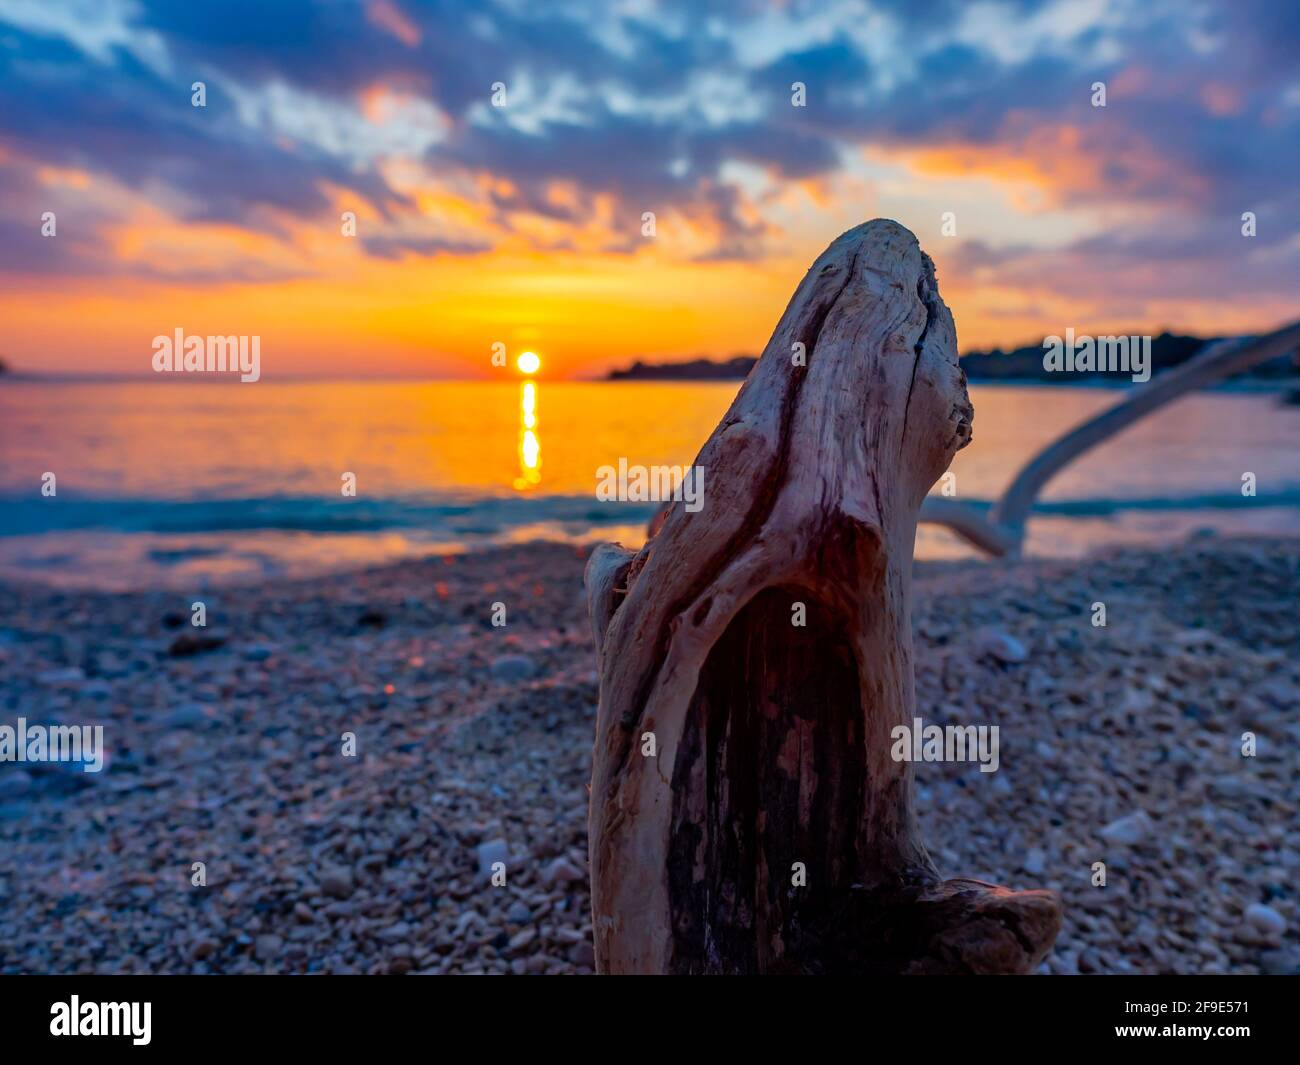 Sunset setting sun seaside beach evening tranquility focus focused on wooden wood erected erection erect alluvion dried tree trunk branch Stock Photo